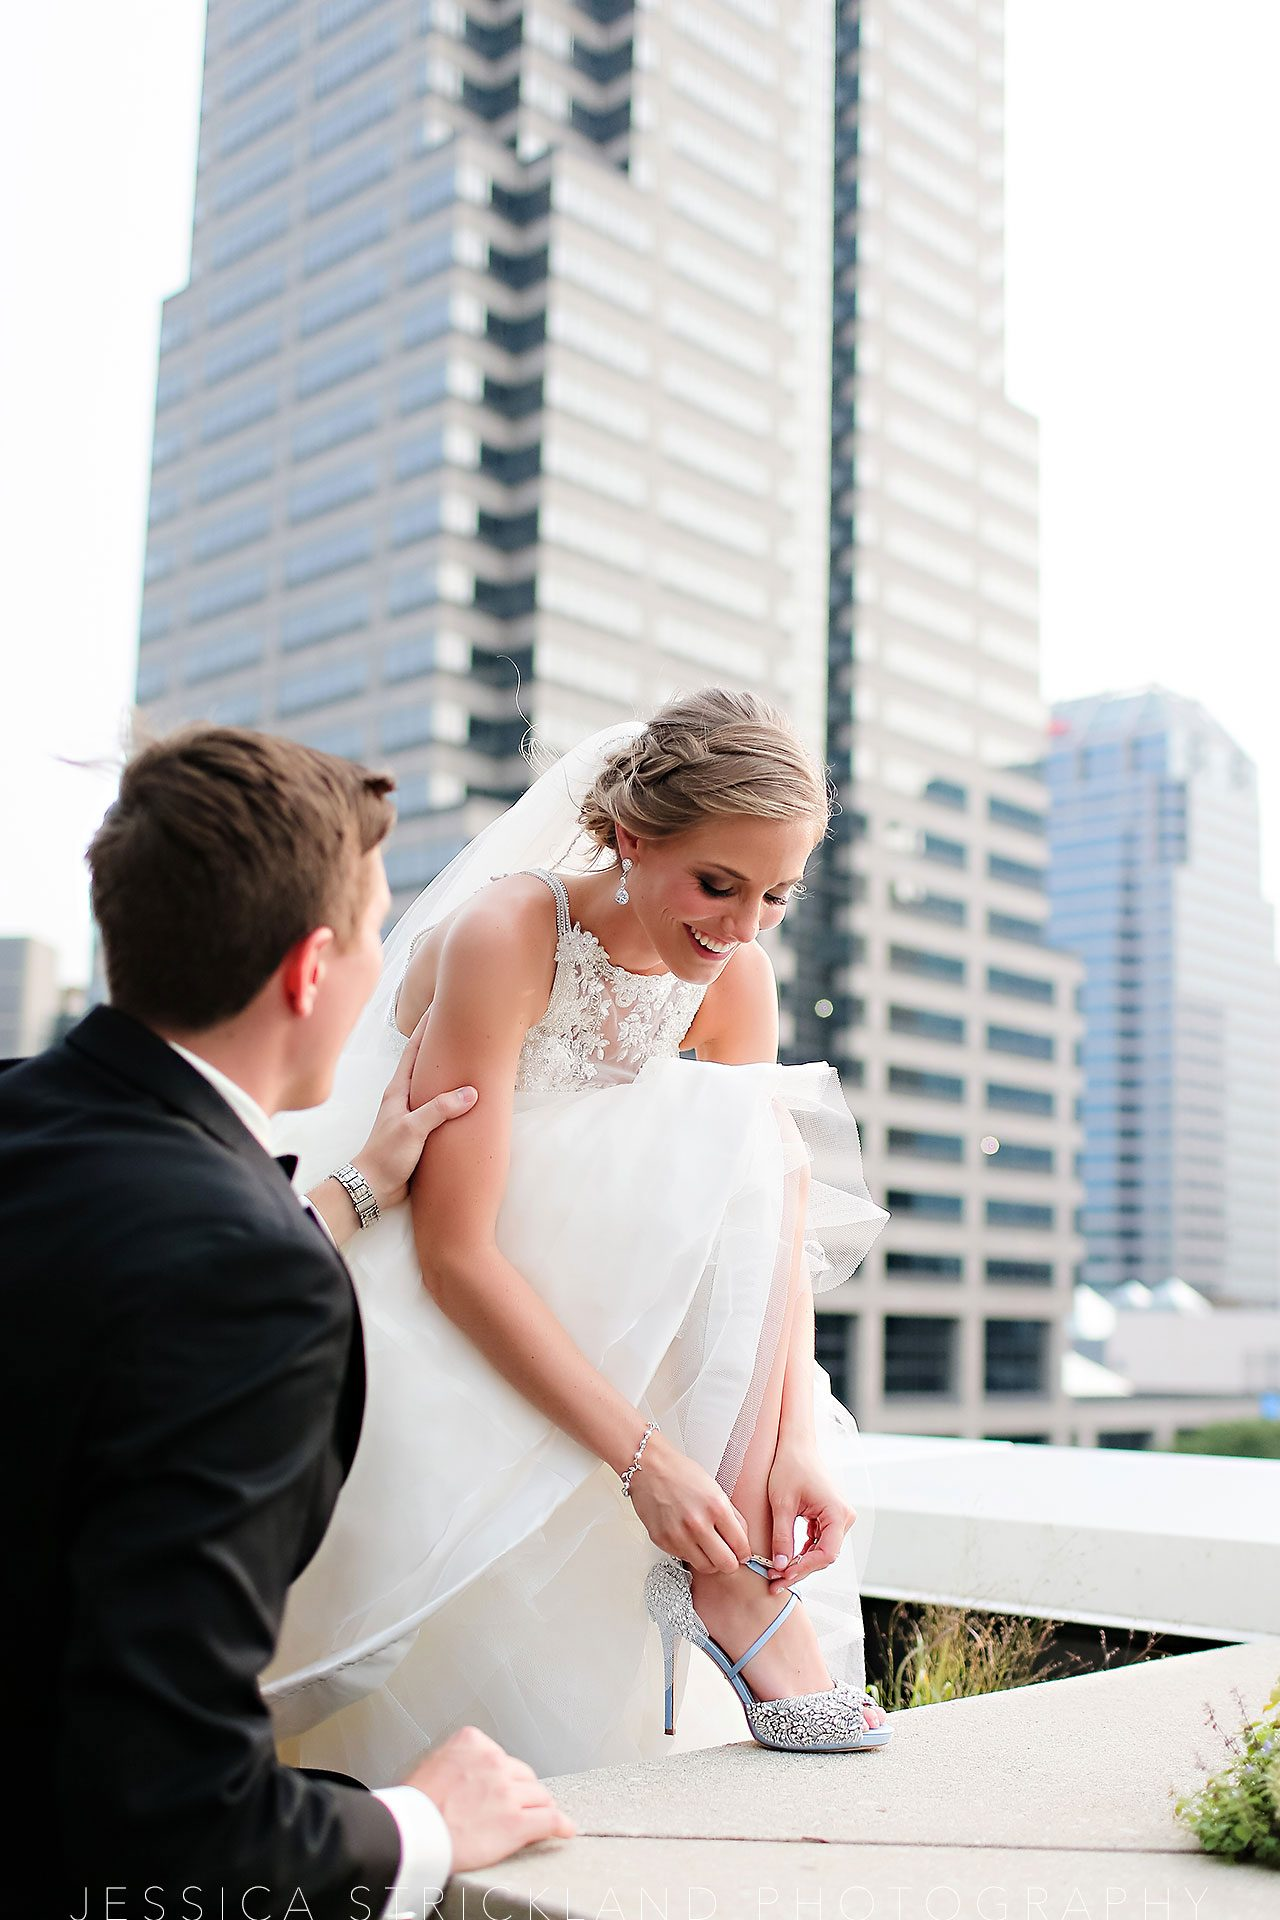 Serra Alex Regions Tower Indianapolis Wedding 248 watermarked